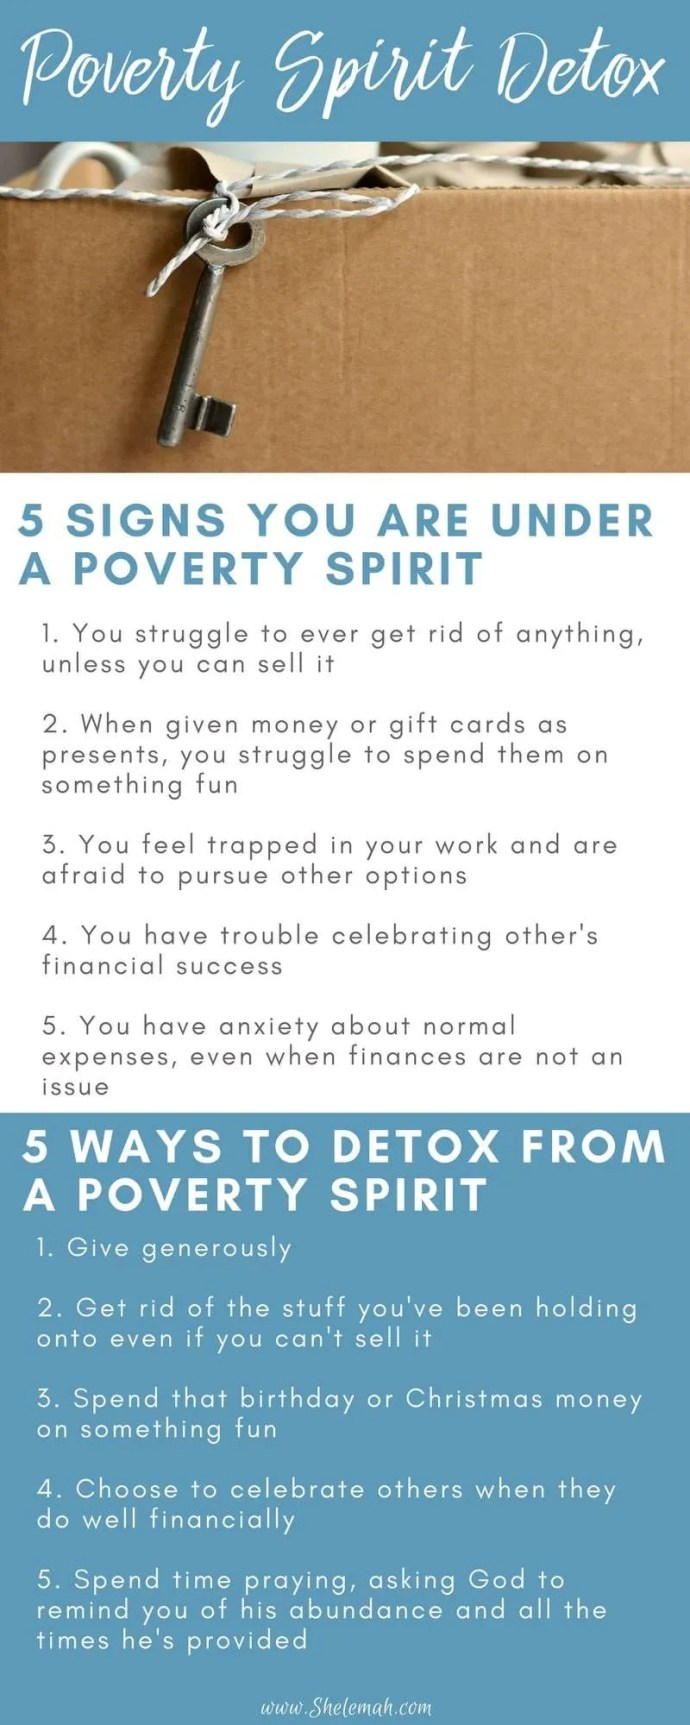 Call it being frugal if you want, but living with boxes of stuff you want to get rid of but feel guilty to purge without selling is really just a poverty spirit. Learn how to detox from a poverty spirit and begin to live in freedom and abundance. #springcleaning #tidyingup